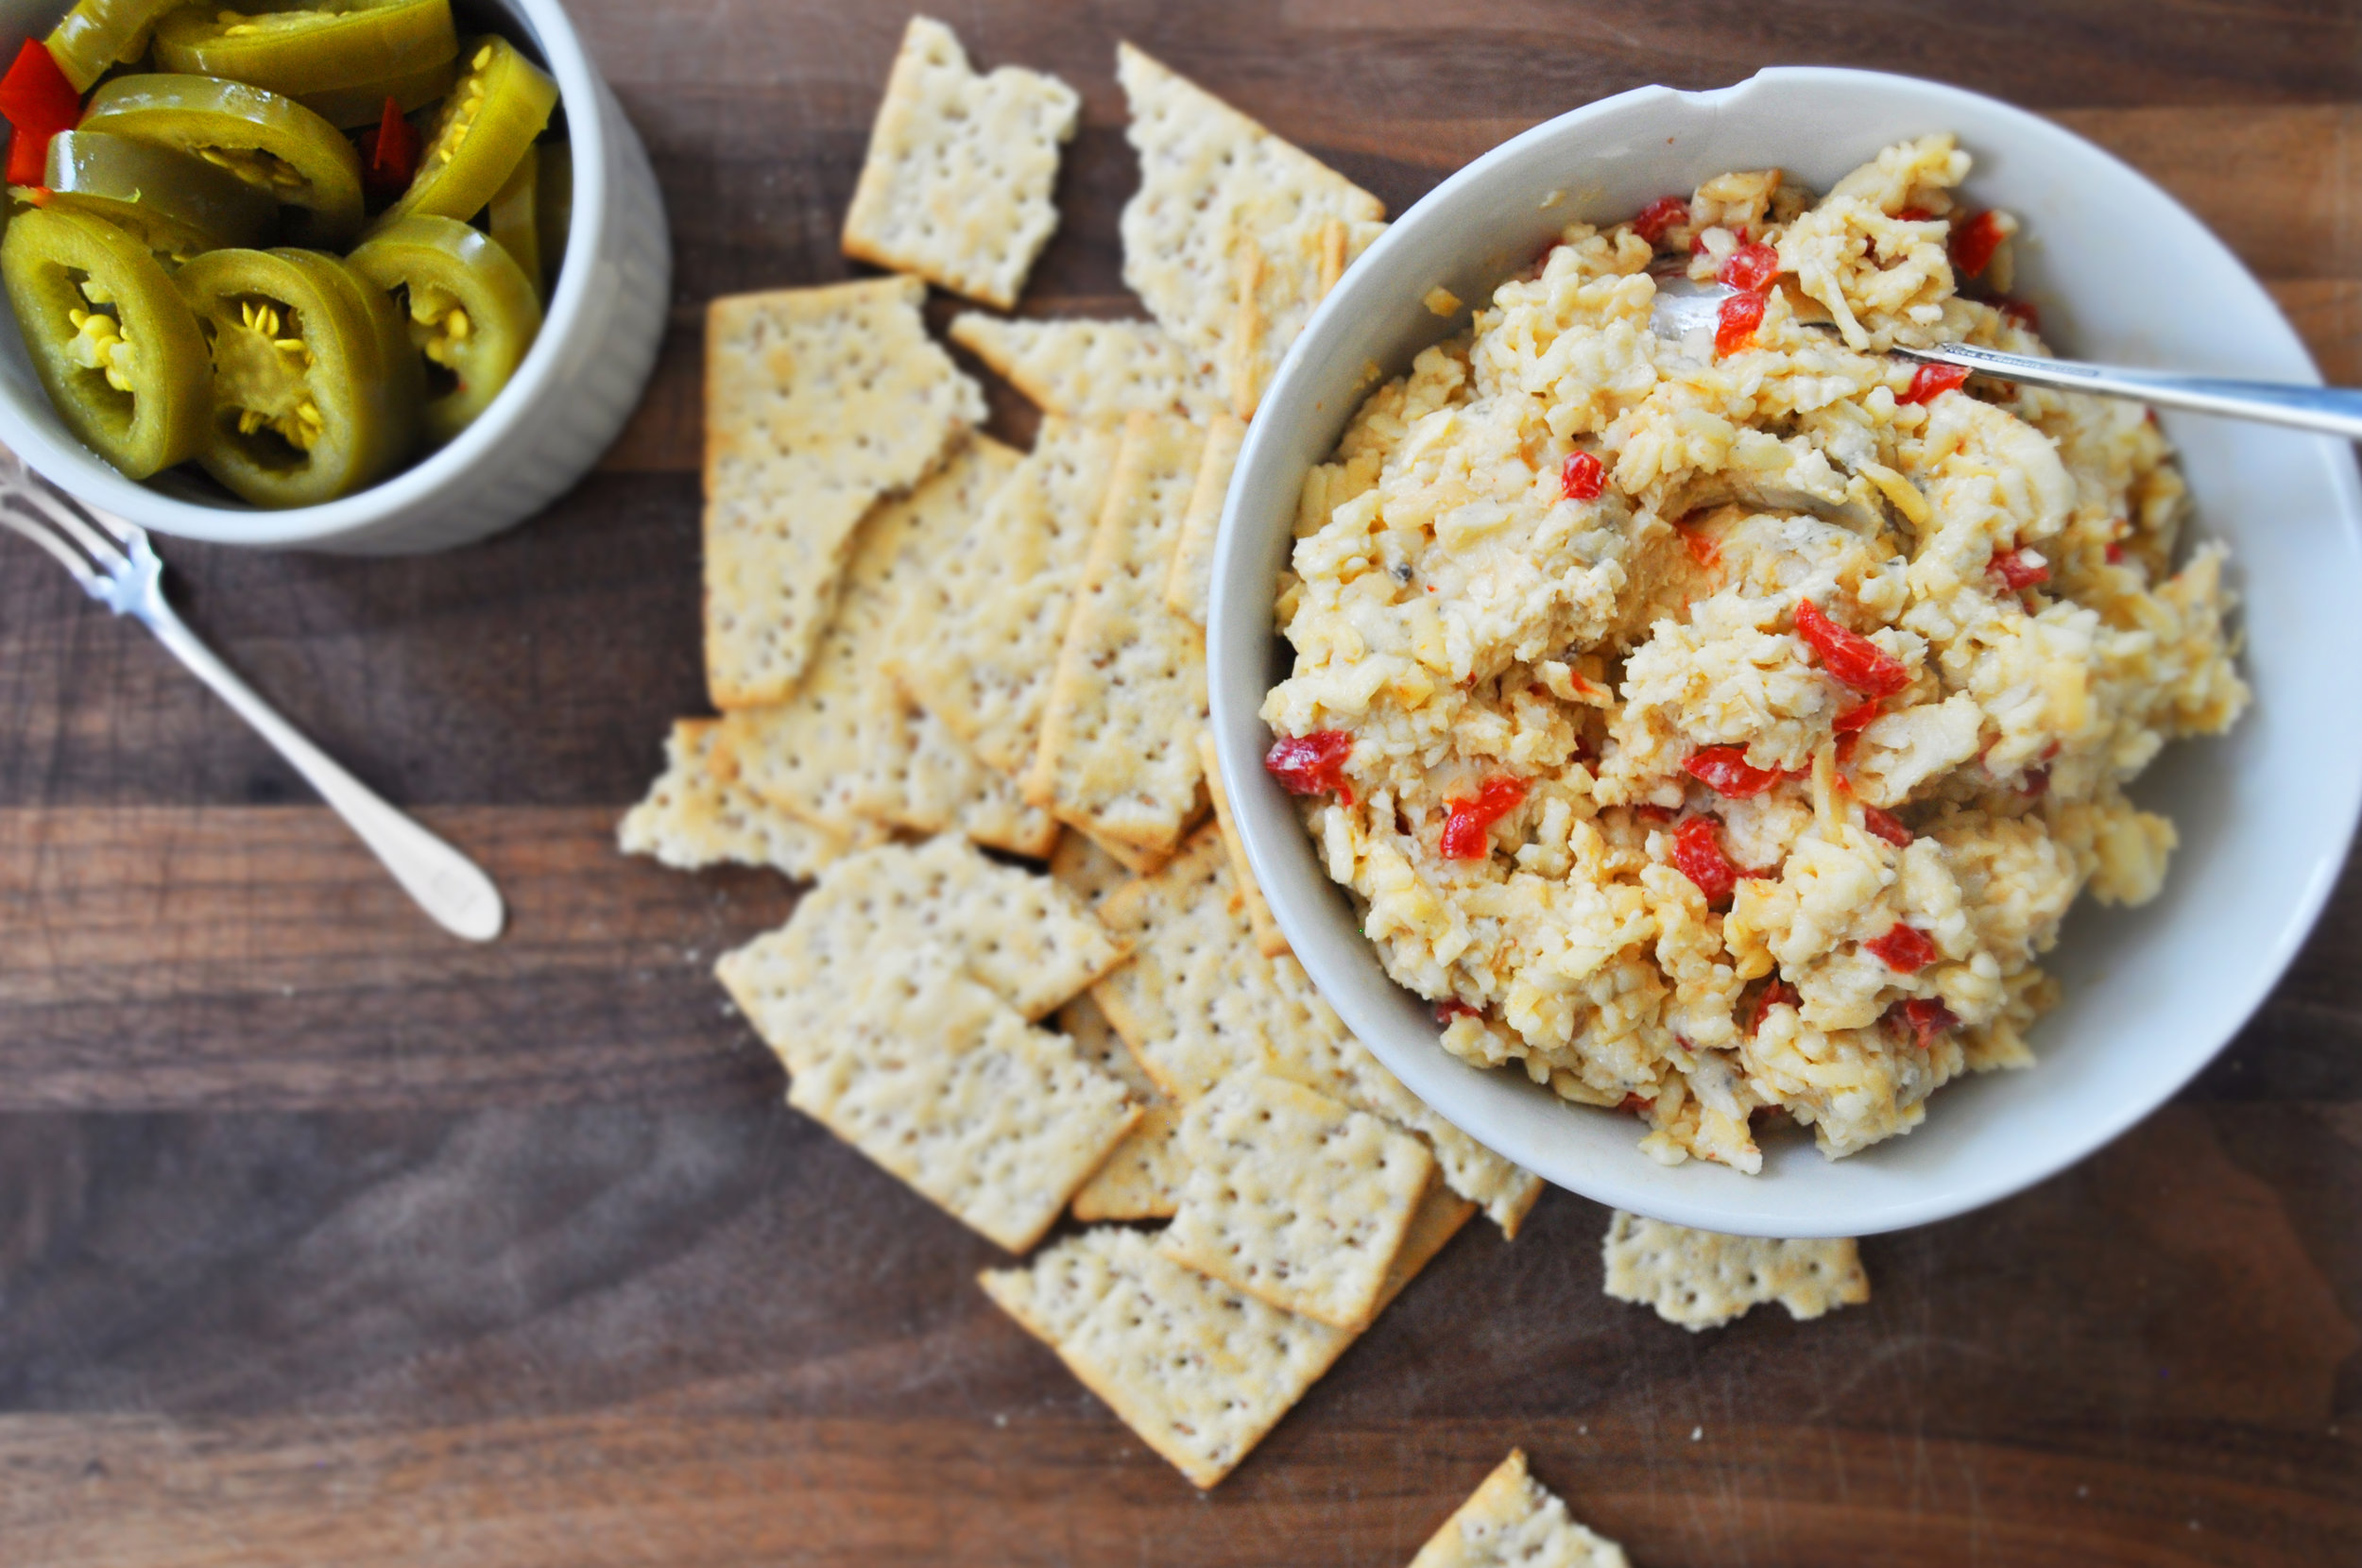 pimiento-cheese-and-crackers